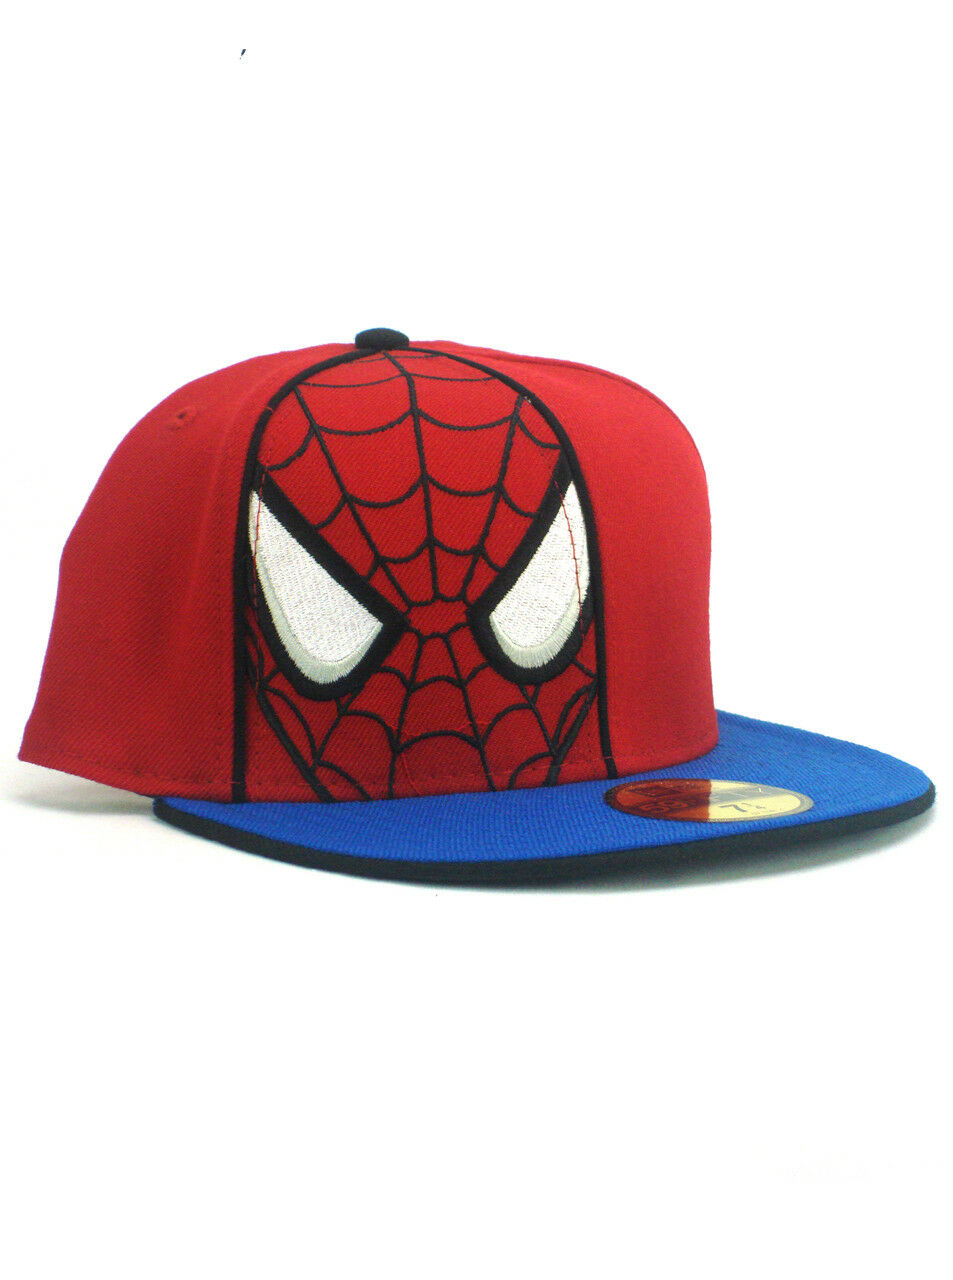 New Fitted Era Spider-Man 59fifty Custom Fitted New Hat Size 7 1/4 Marvel Wall Crawler Red 82152d